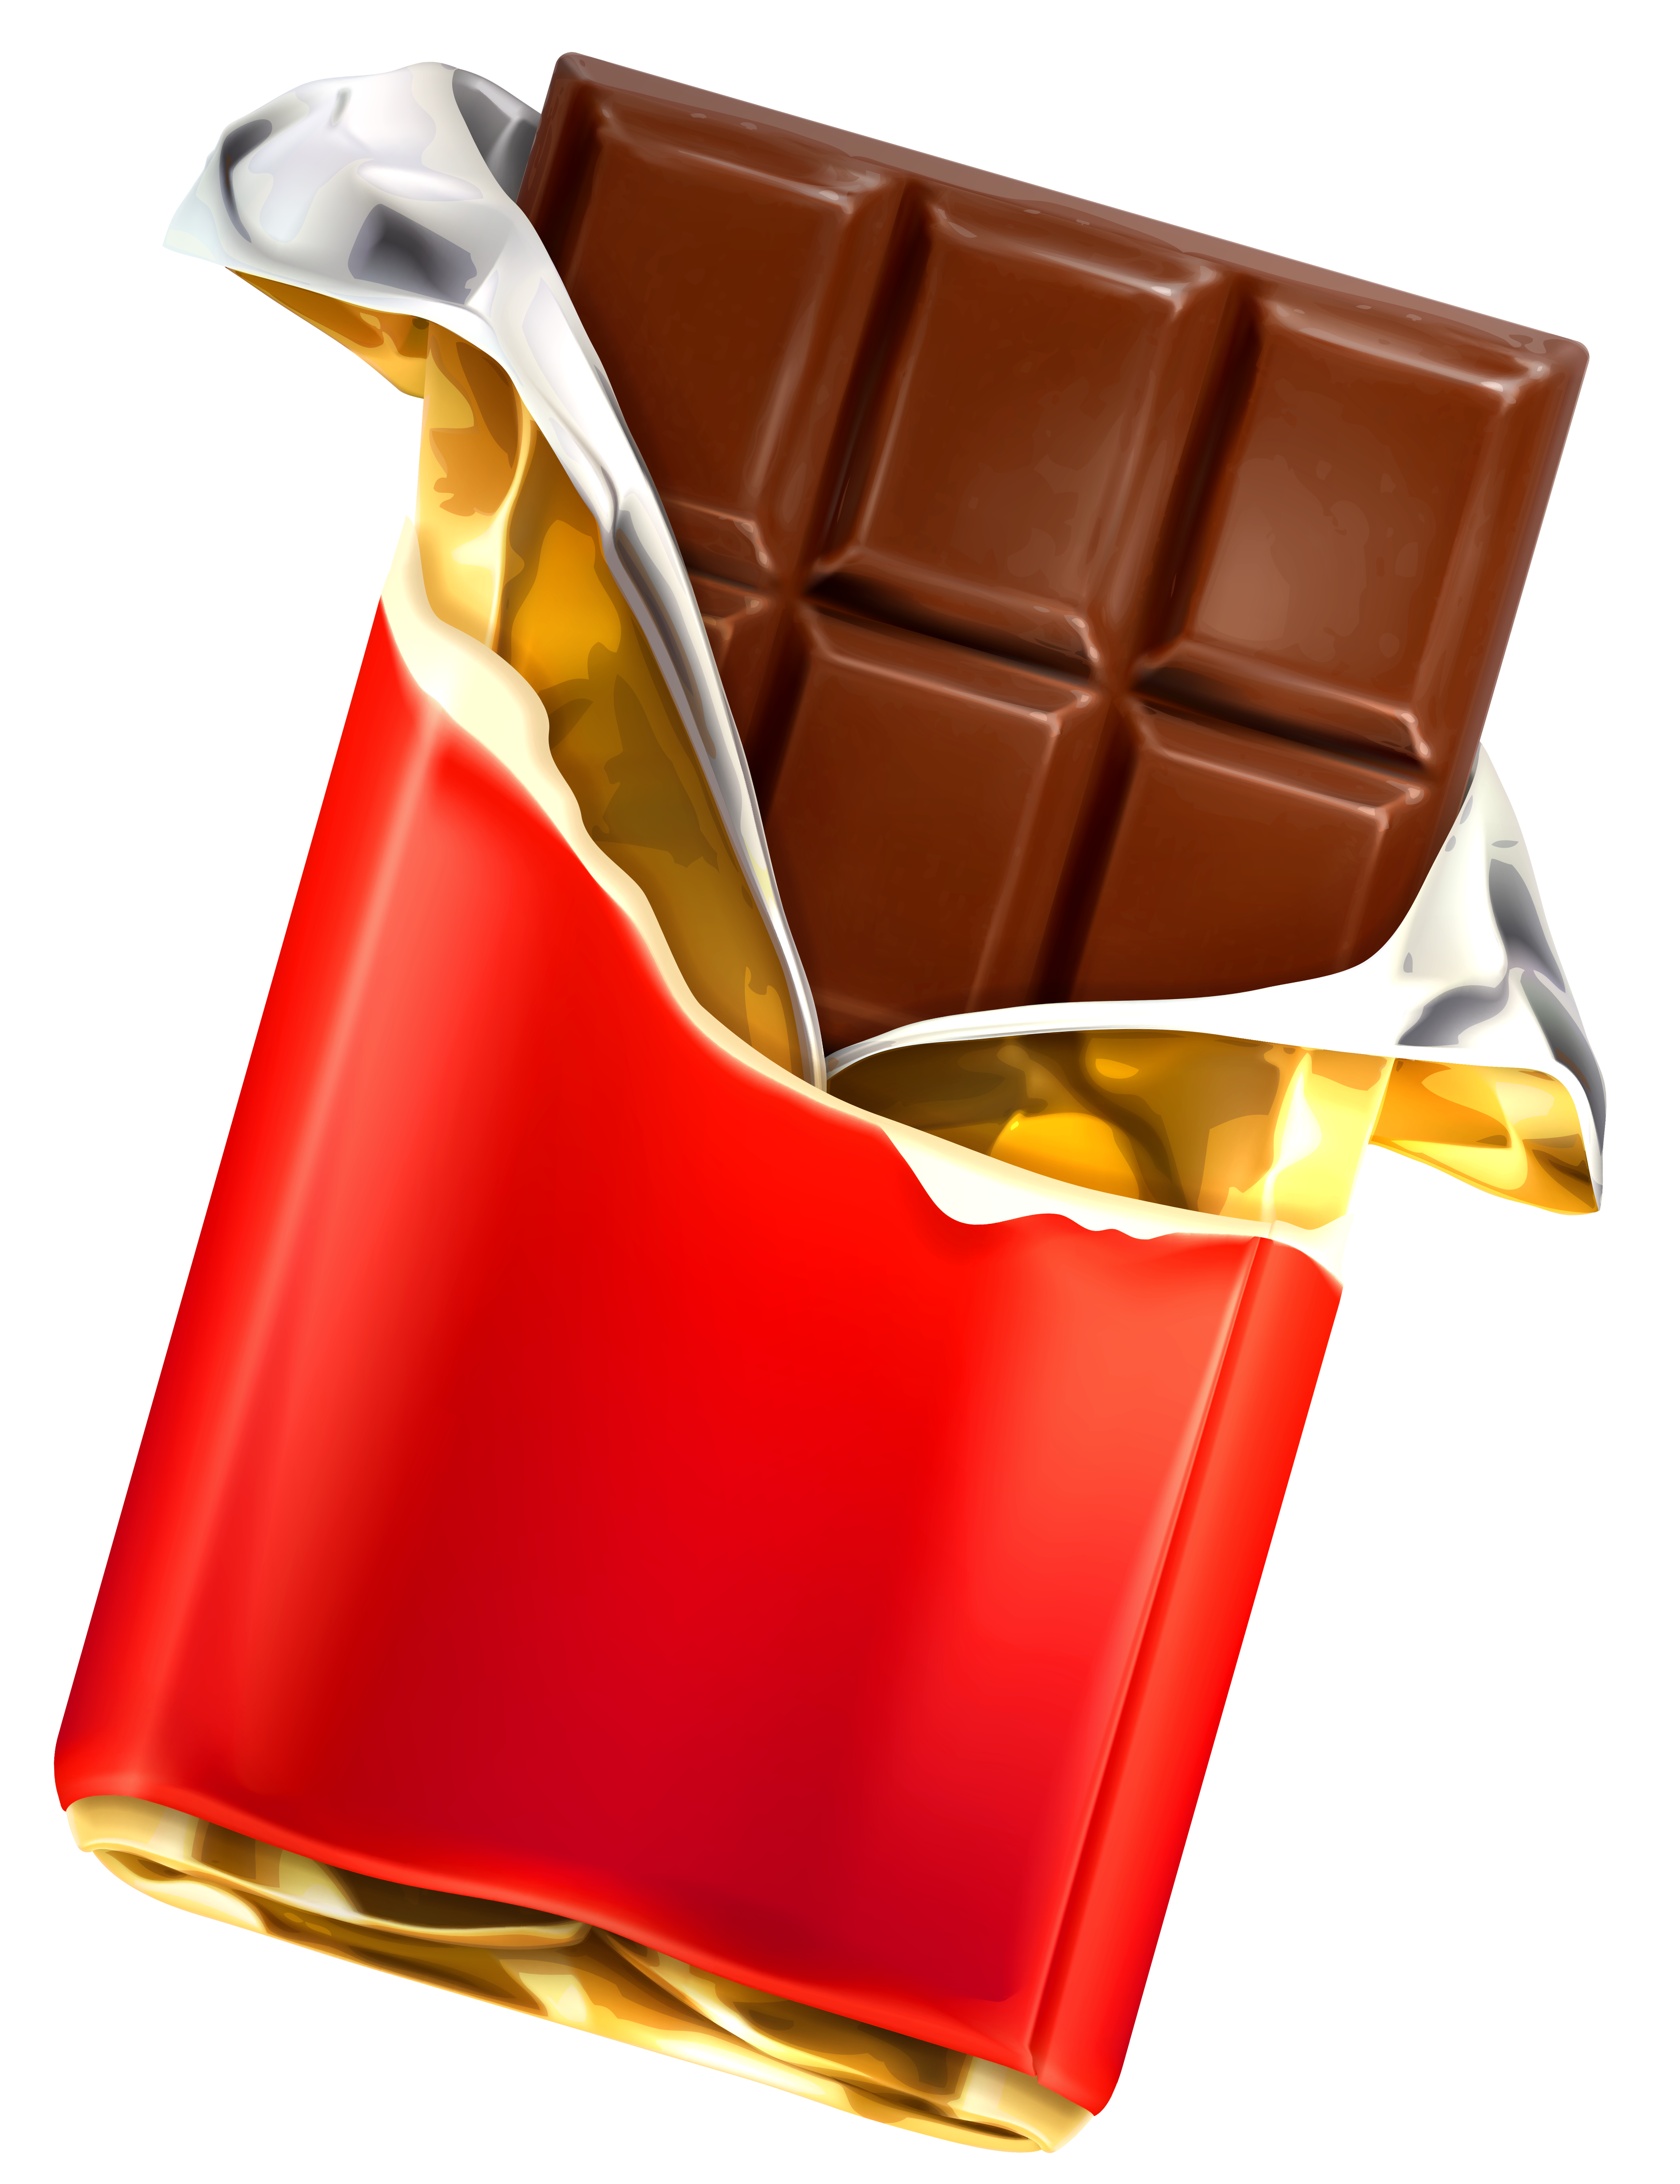 Chocolate clipart. Png image gallery yopriceville